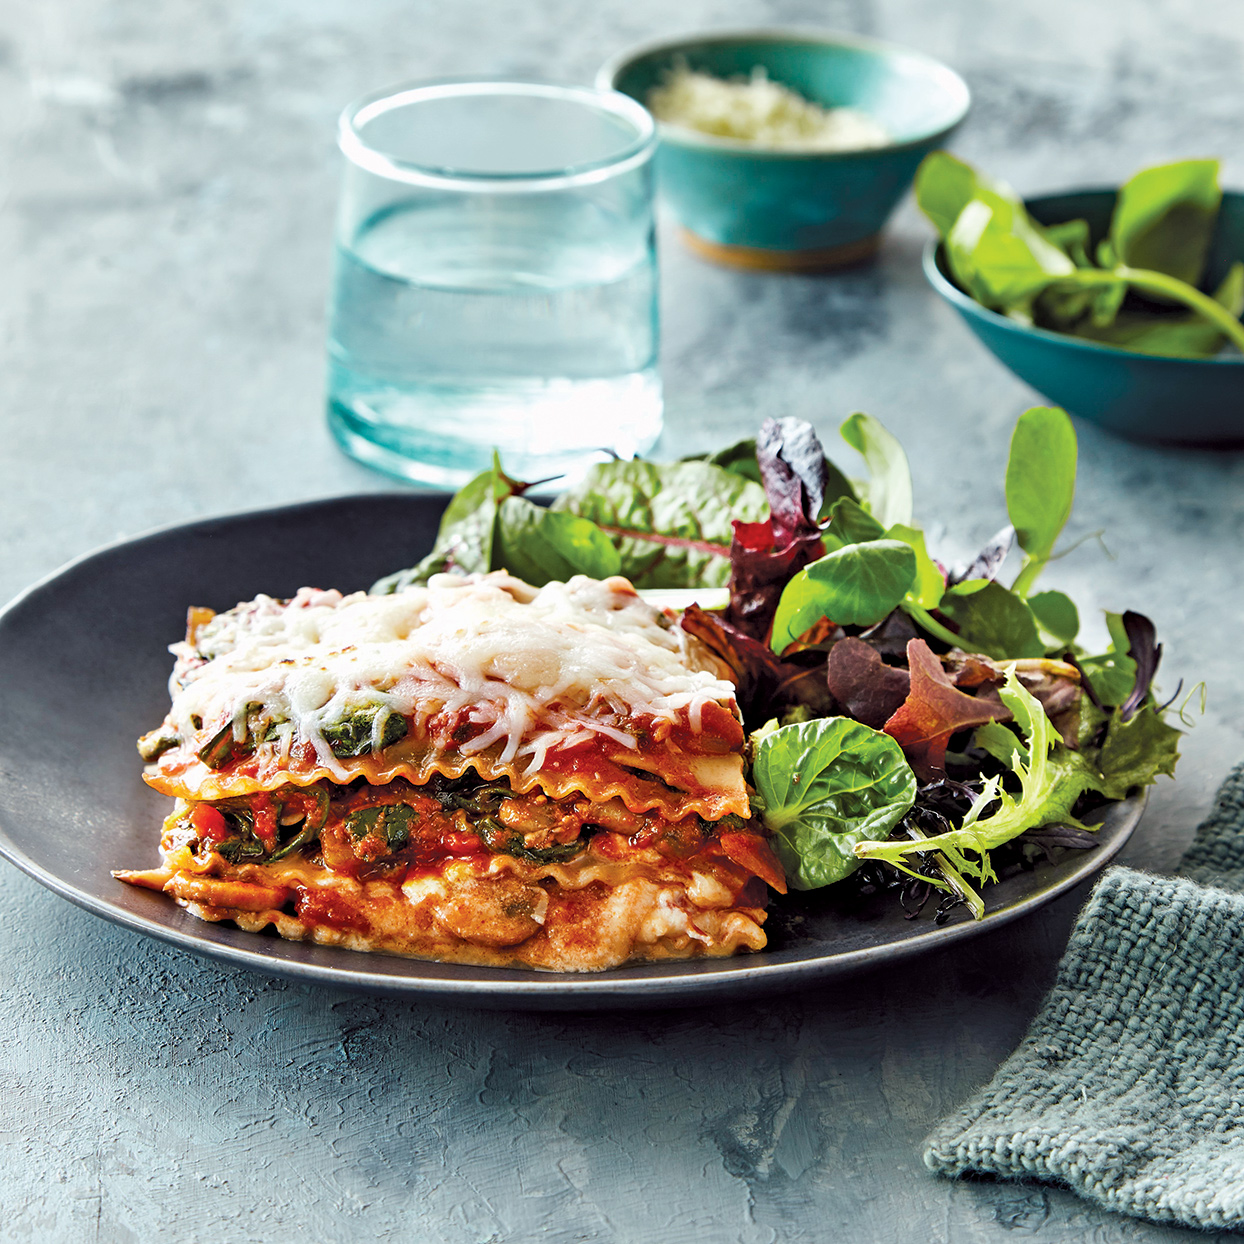 Cooking lasagna in your slow cooker rather than in the oven keeps it super moist and cheesy—just like lasagna should be. You can easily assemble this dish in the slow cooker ahead of time and refrigerate it. Just be sure to let the slow cooker come to room temperature before starting it so that the cook time is accurate. Serve with a green salad, if desired.